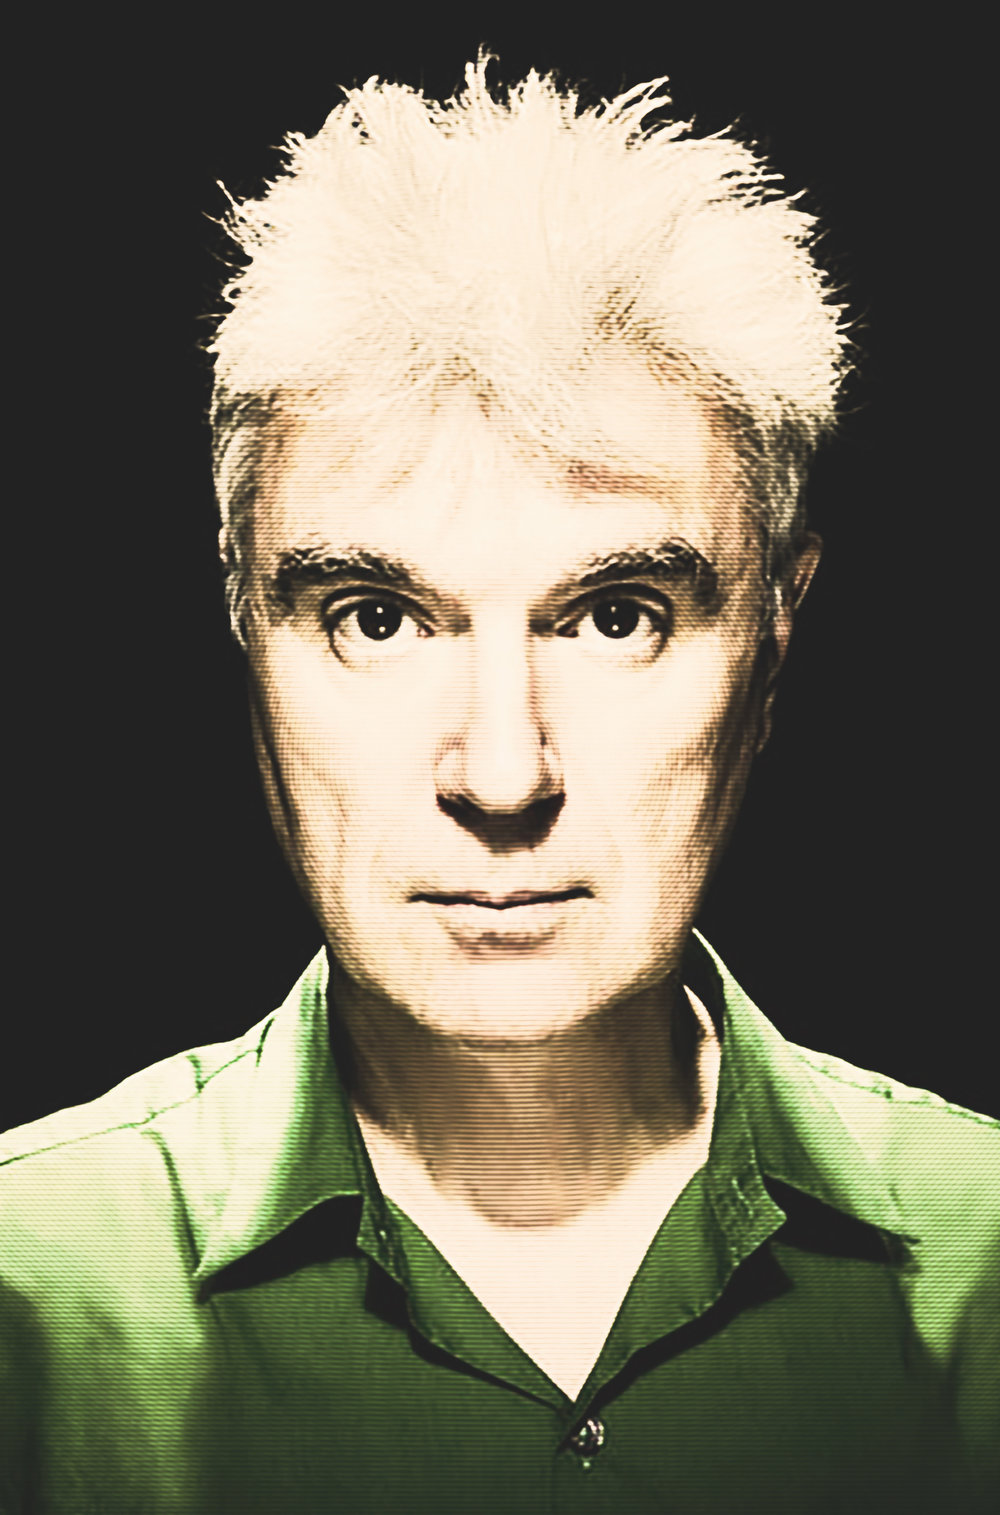 Interview with David Byrne, former Talking Heads frontman, about his concept album Here Lies Love.